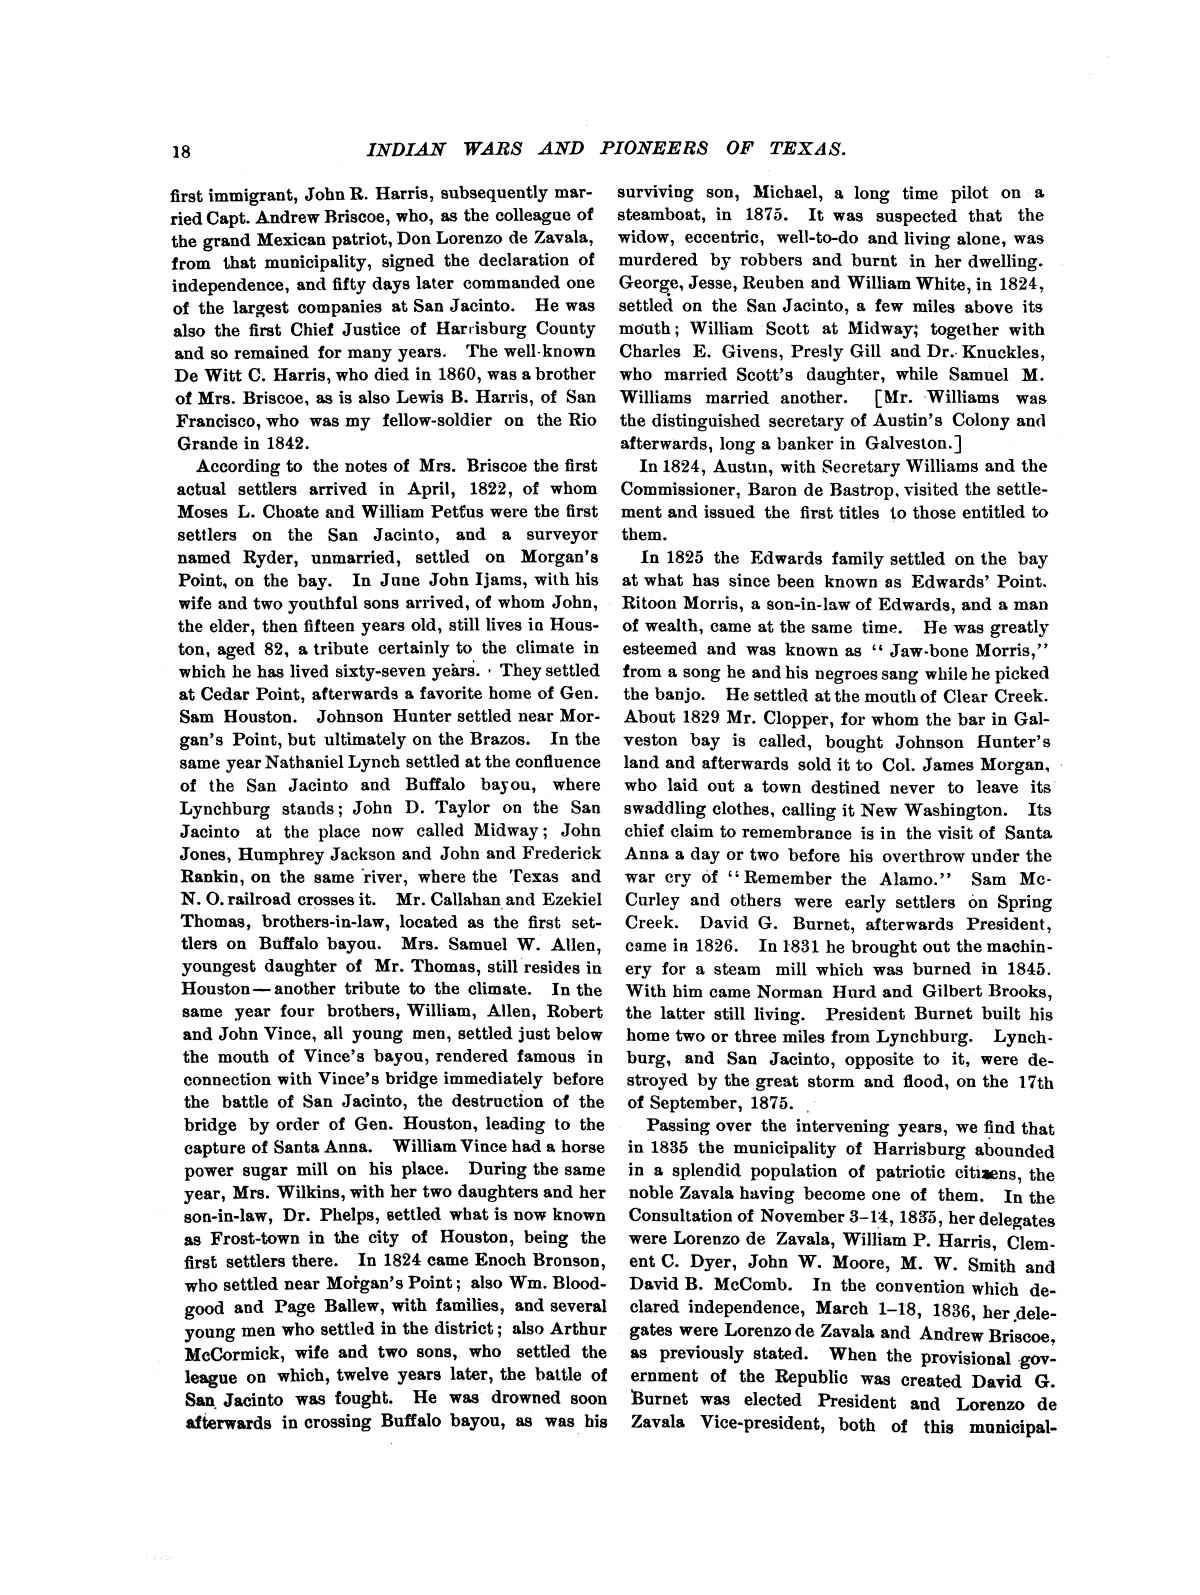 Indian wars and pioneers of Texas / by John Henry Brown.                                                                                                      [Sequence #]: 24 of 894